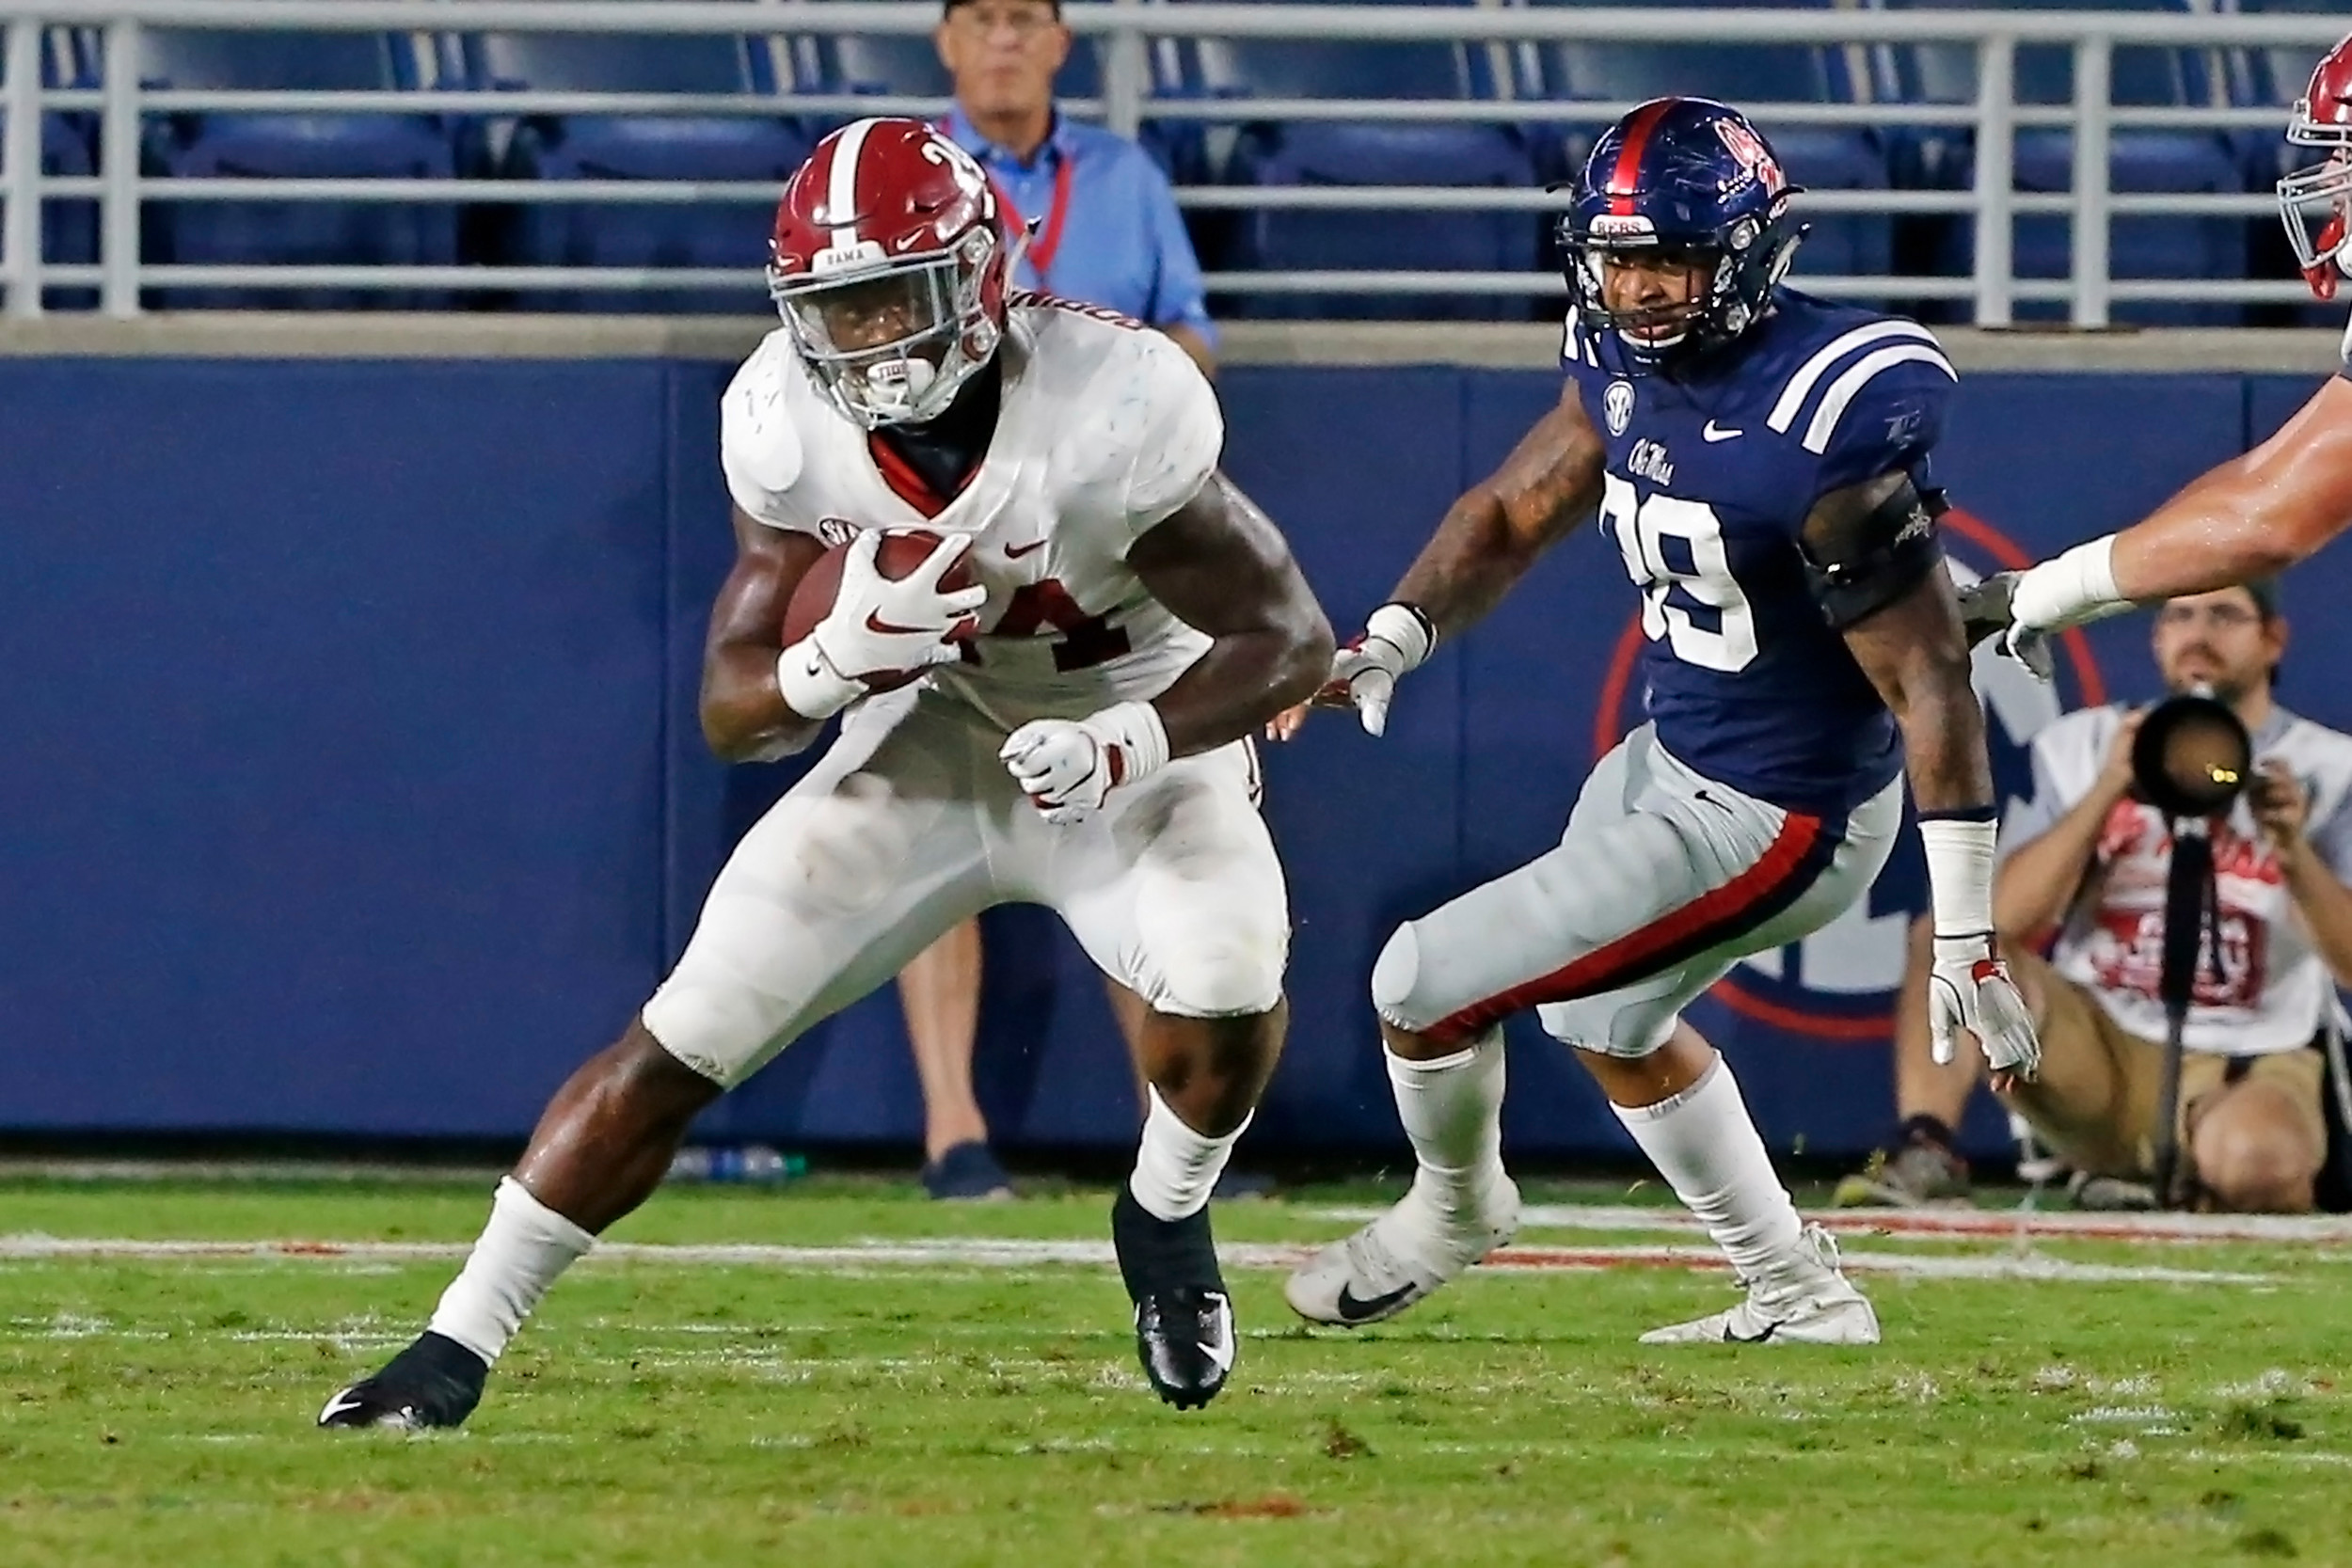 Alabama Crimson Tide running back Brian Robinson Jr. (24) rushes during the game between the University of Alabama and Ole Miss at Vaught-Hemingway Stadium. Jason Clark / Daily Mountain Eagle